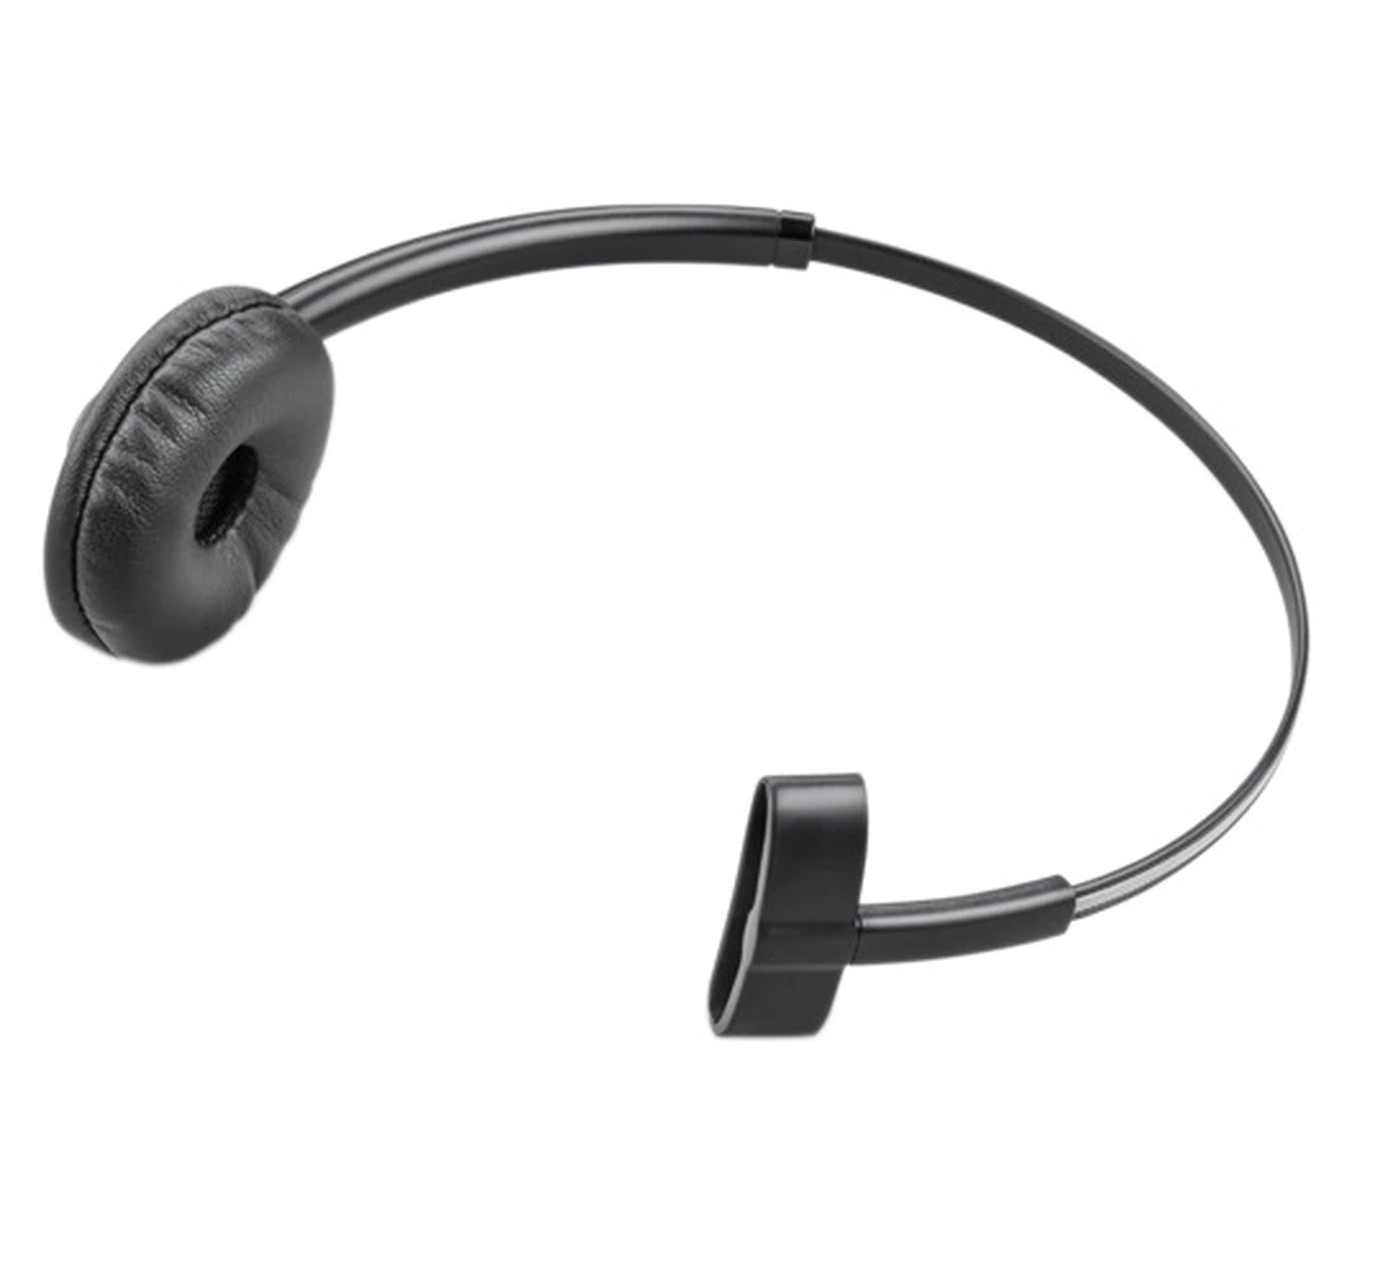 plantronics-replacement-headband.jpg